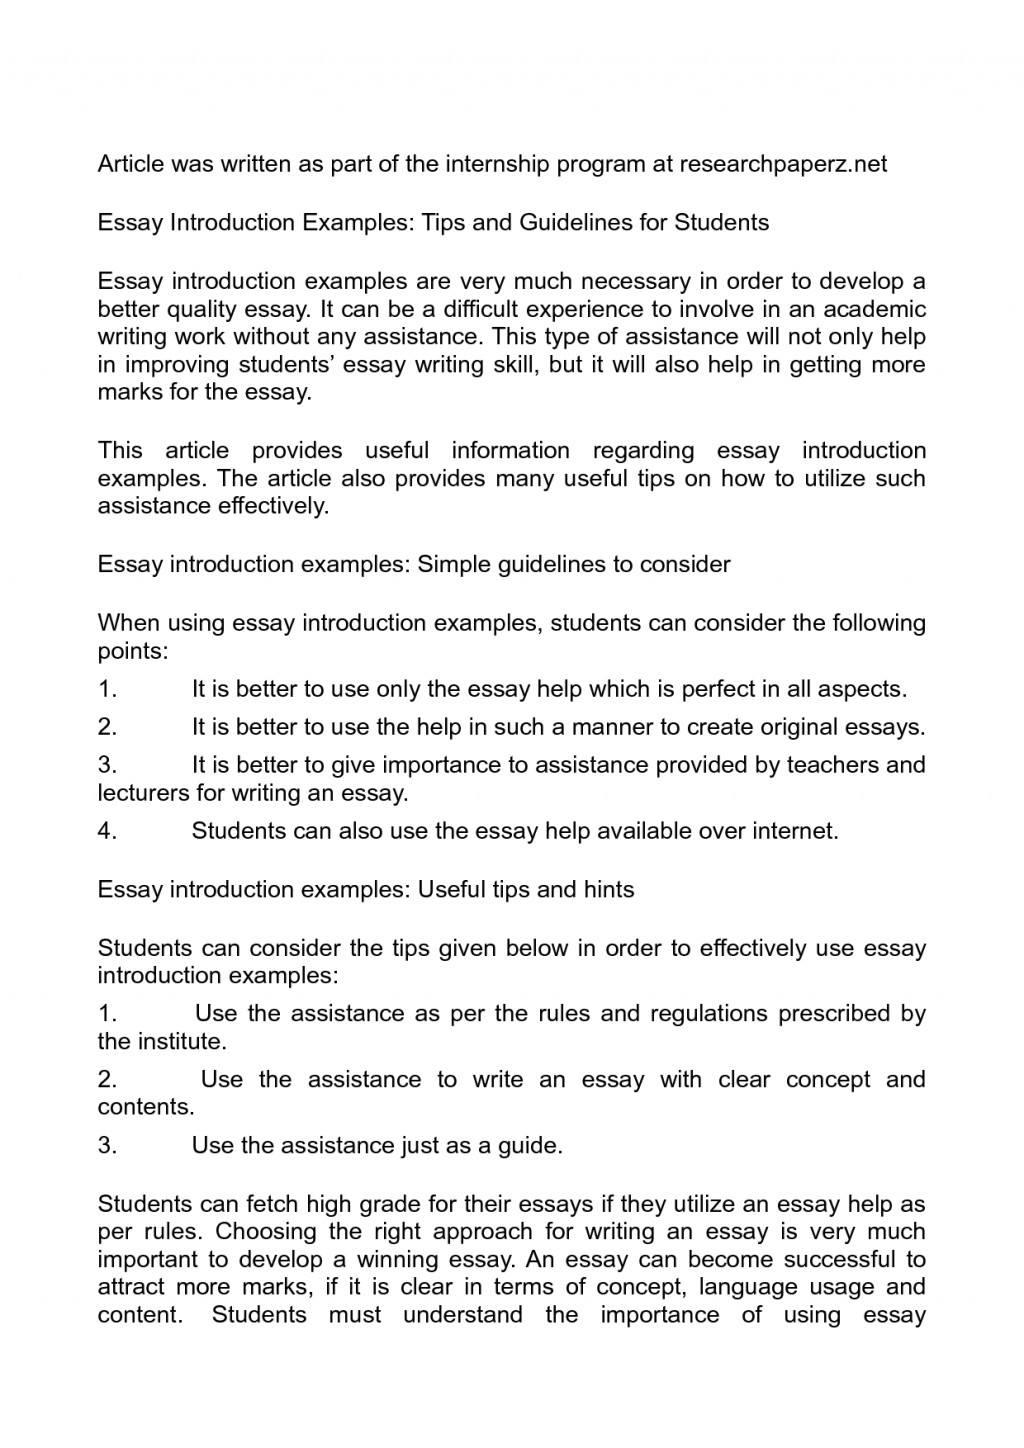 007 Essay Example Write An Academic Introduction Awful Writing Structure Skills Pdf Large